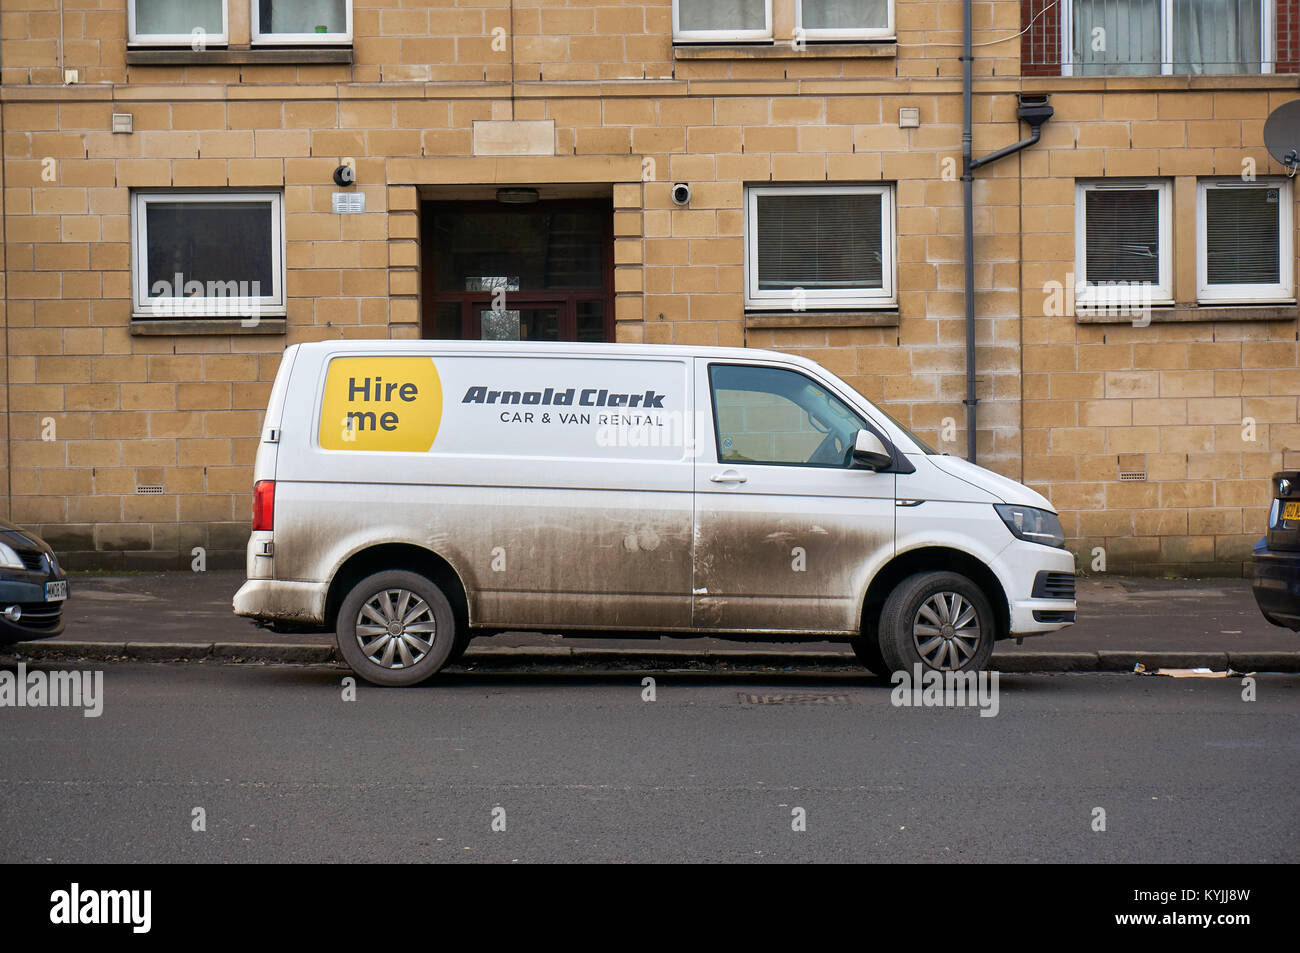 3bf9364101 White van from the car and van rental company Arnold Clark. - Stock Image